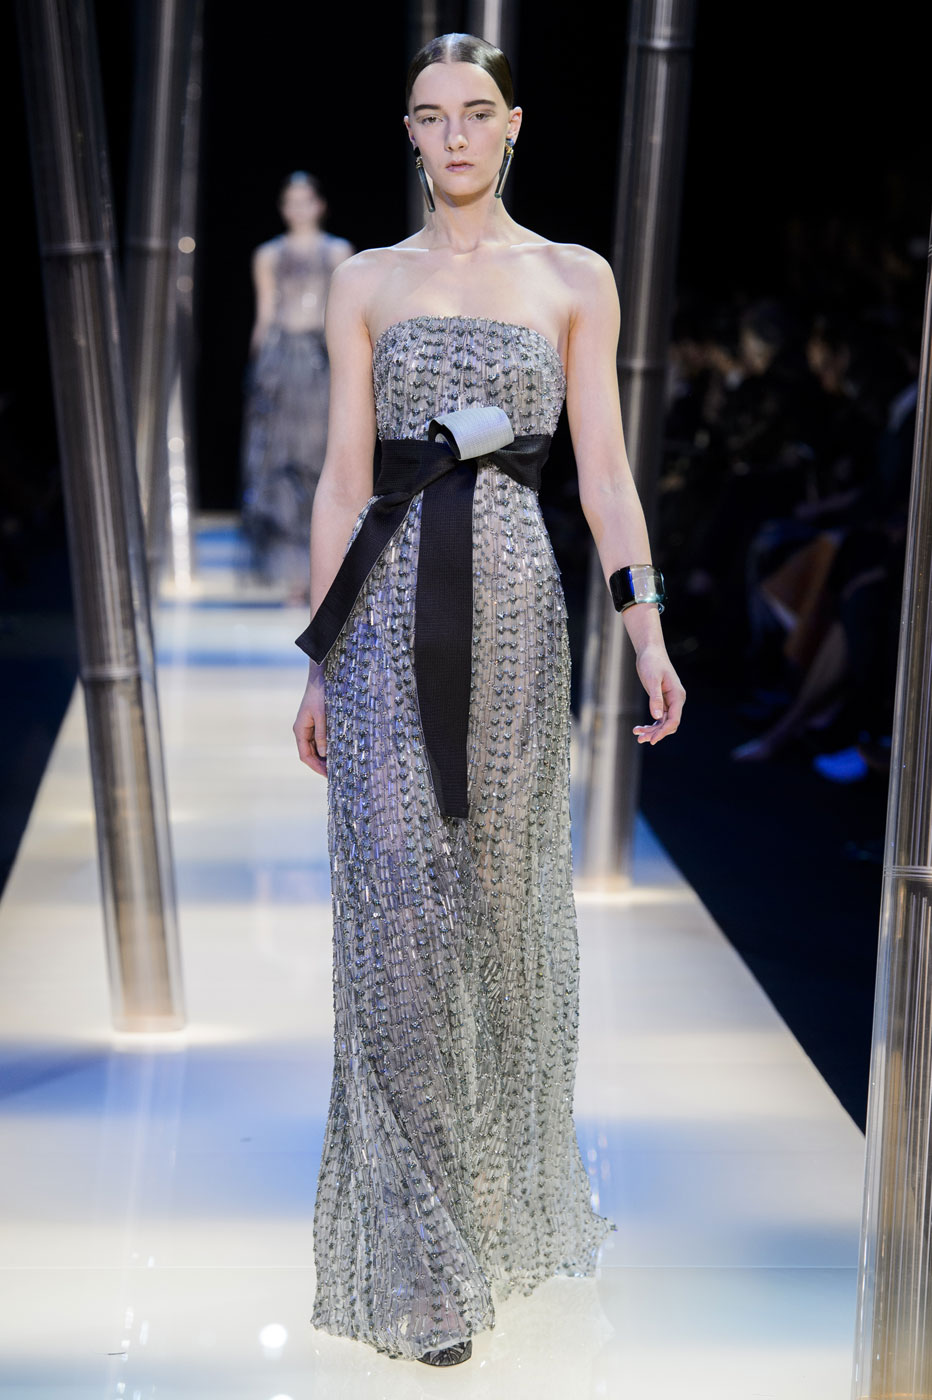 Giorgio-armani-Prive-fashion-runway-show-haute-couture-paris-spring-2015-the-impression-115